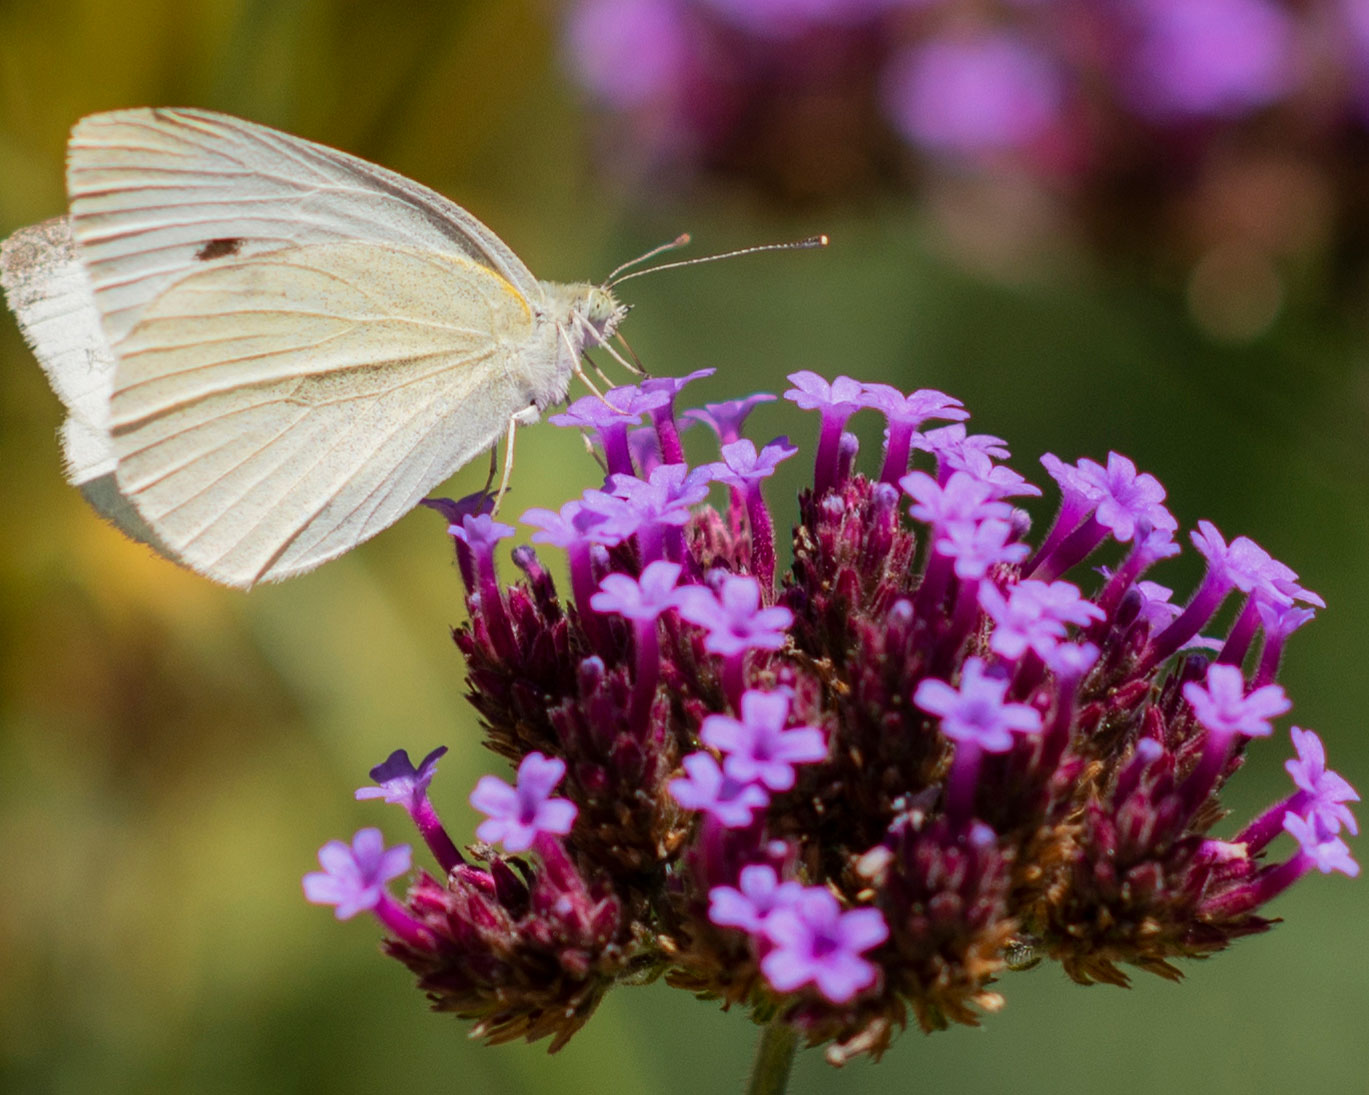 Butterfly on flower as metaphor for positive habits and change